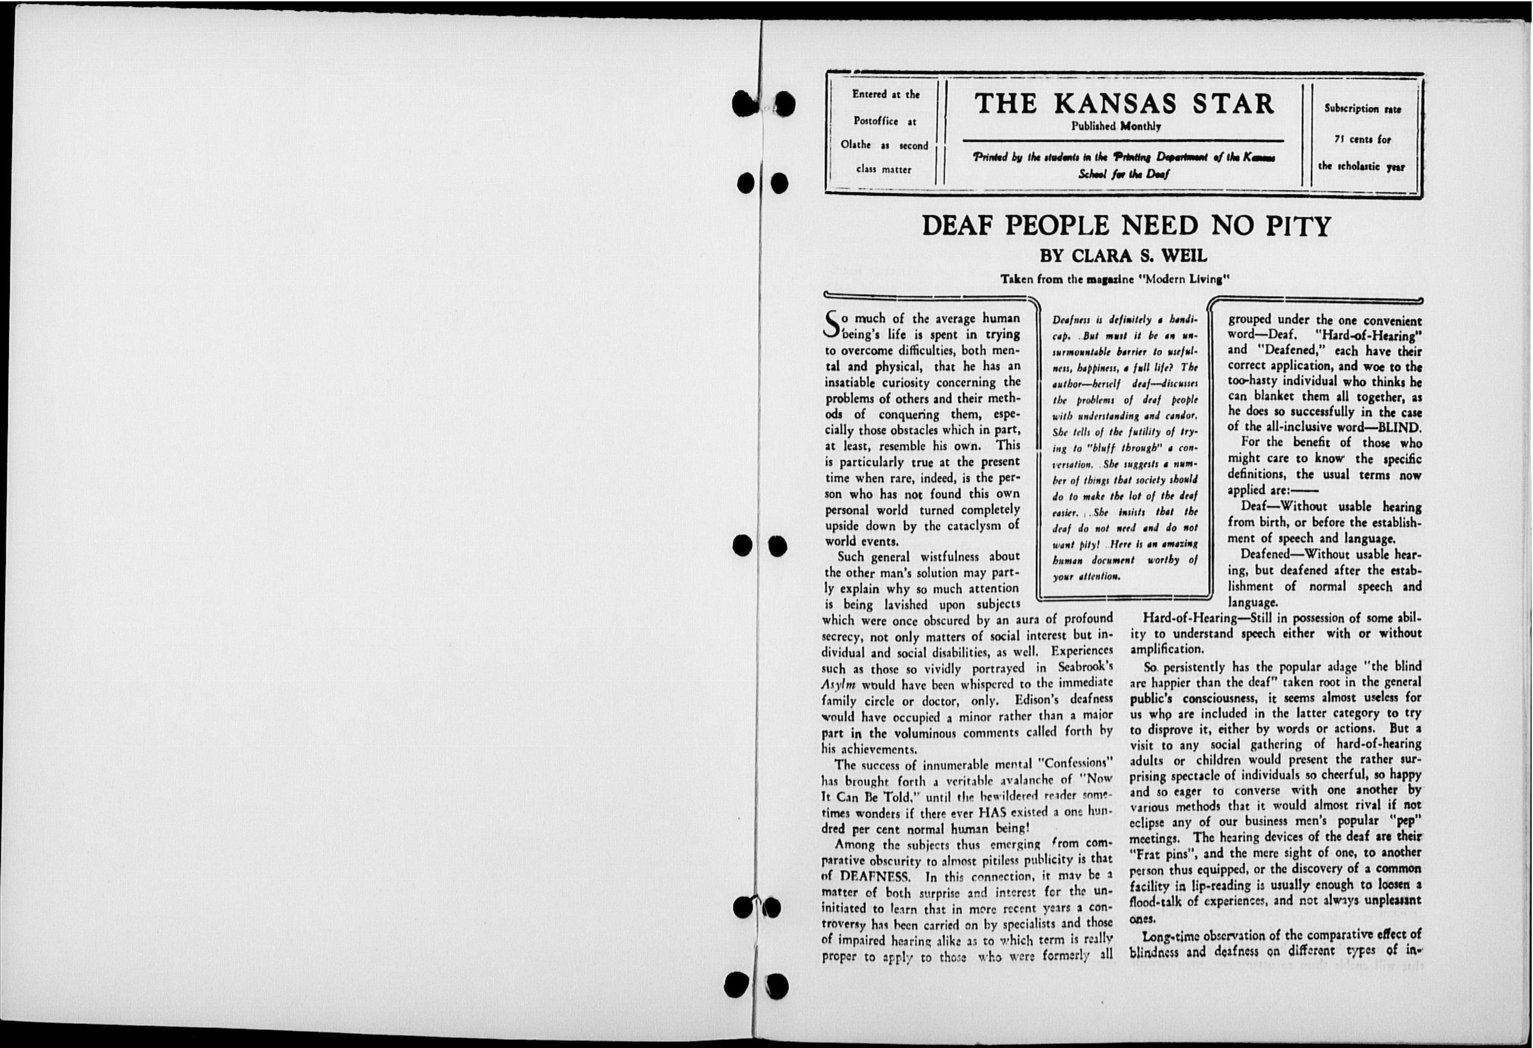 The Kansas Star, volume 51, number 7 - Inside cover-1